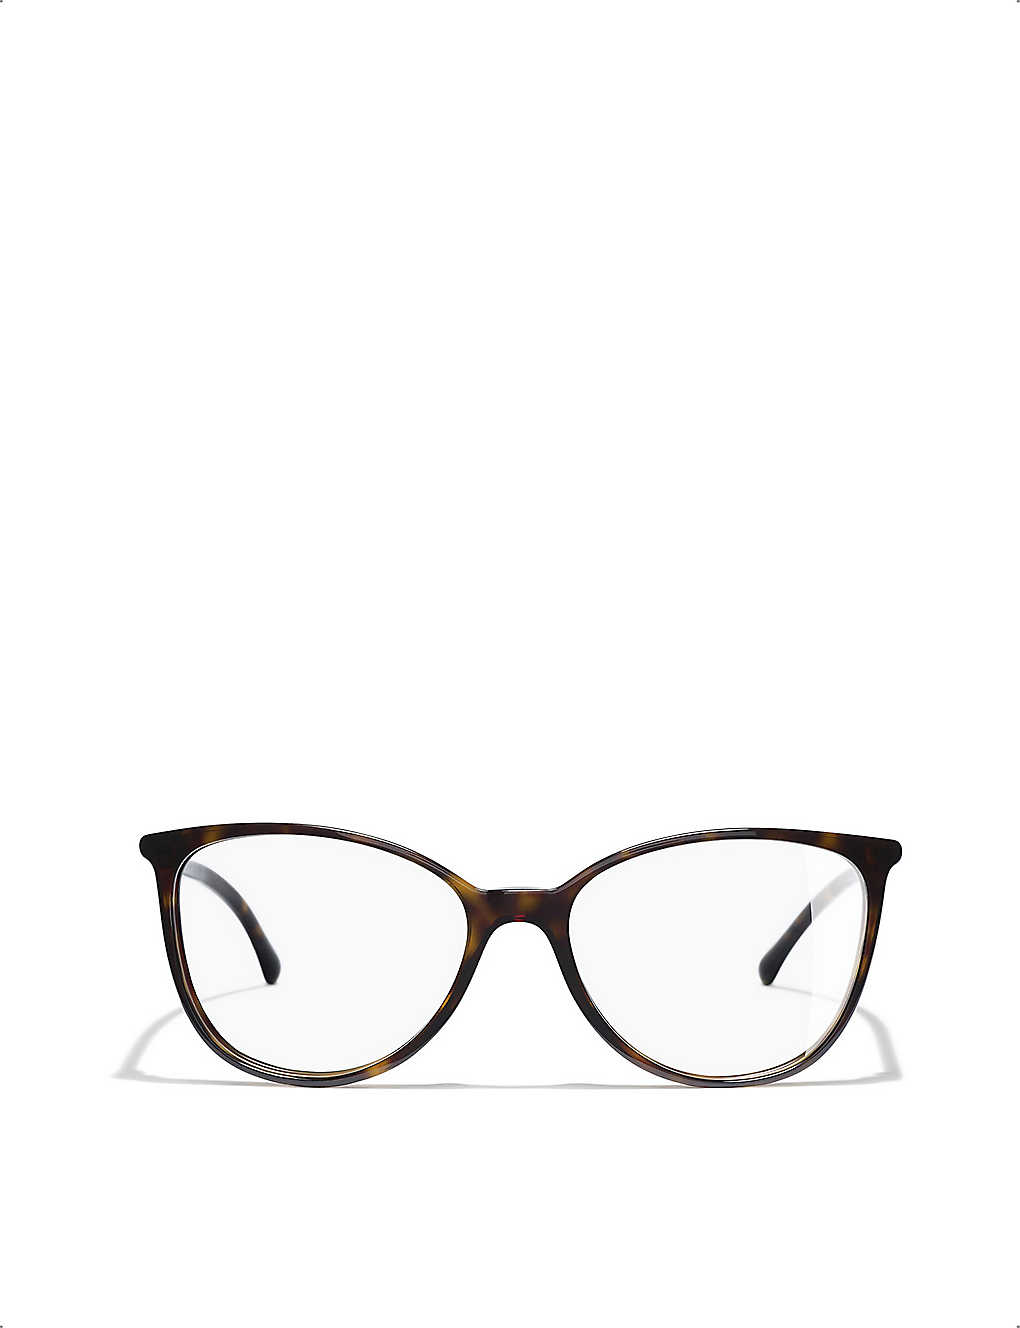 cea4f0c953f25 CHANEL - CH3373 tortoiseshell-effect cat-eye glasses